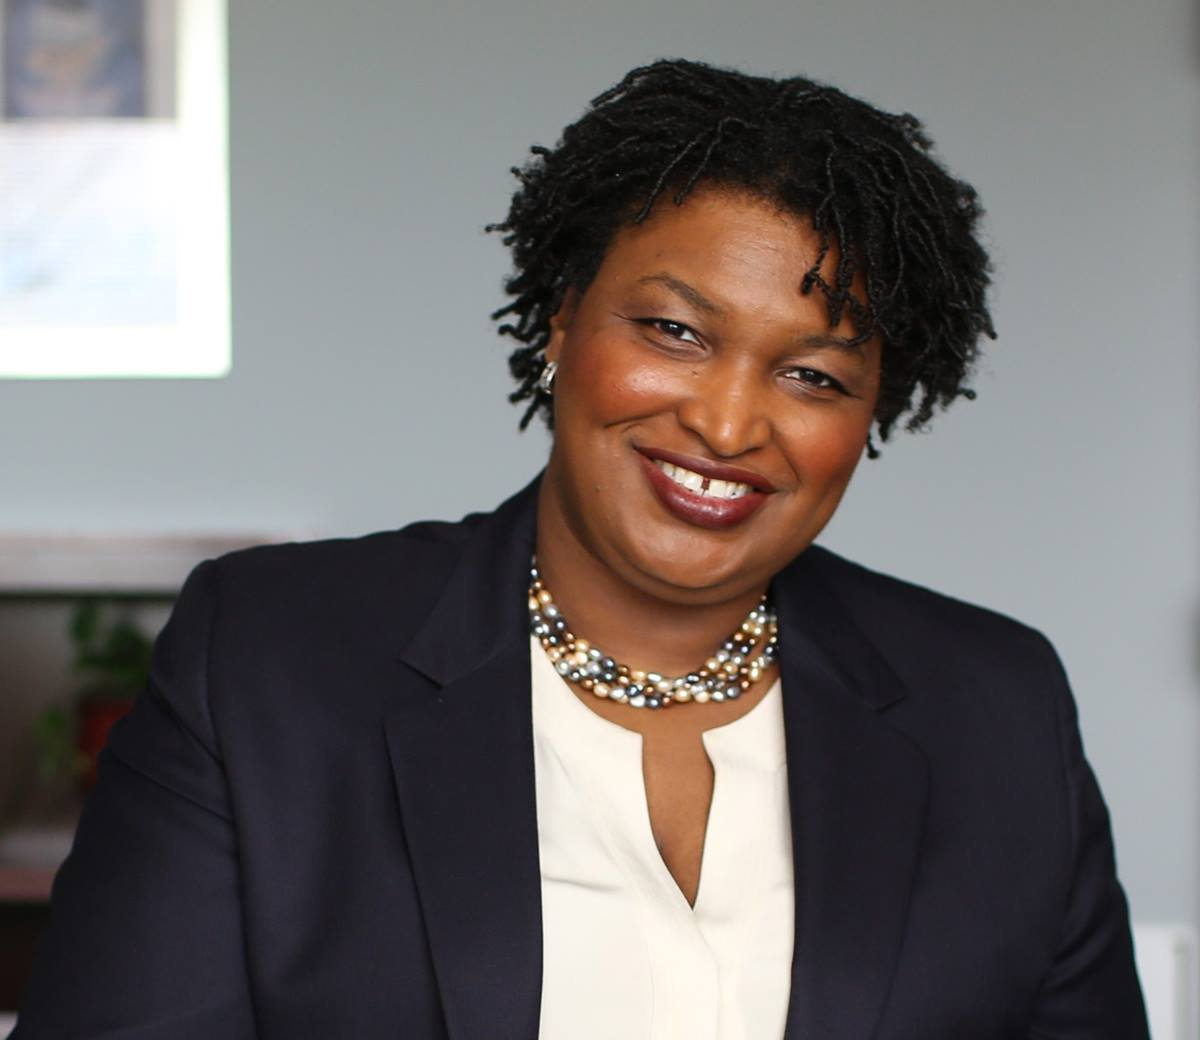 Stacey Abrams won more than 75 percent of votes to become Georgia's Democratic nominee for governor. She made it a point to thank her United Methodist pastor parents and to quote from the Book of Esther in her acceptance speech.